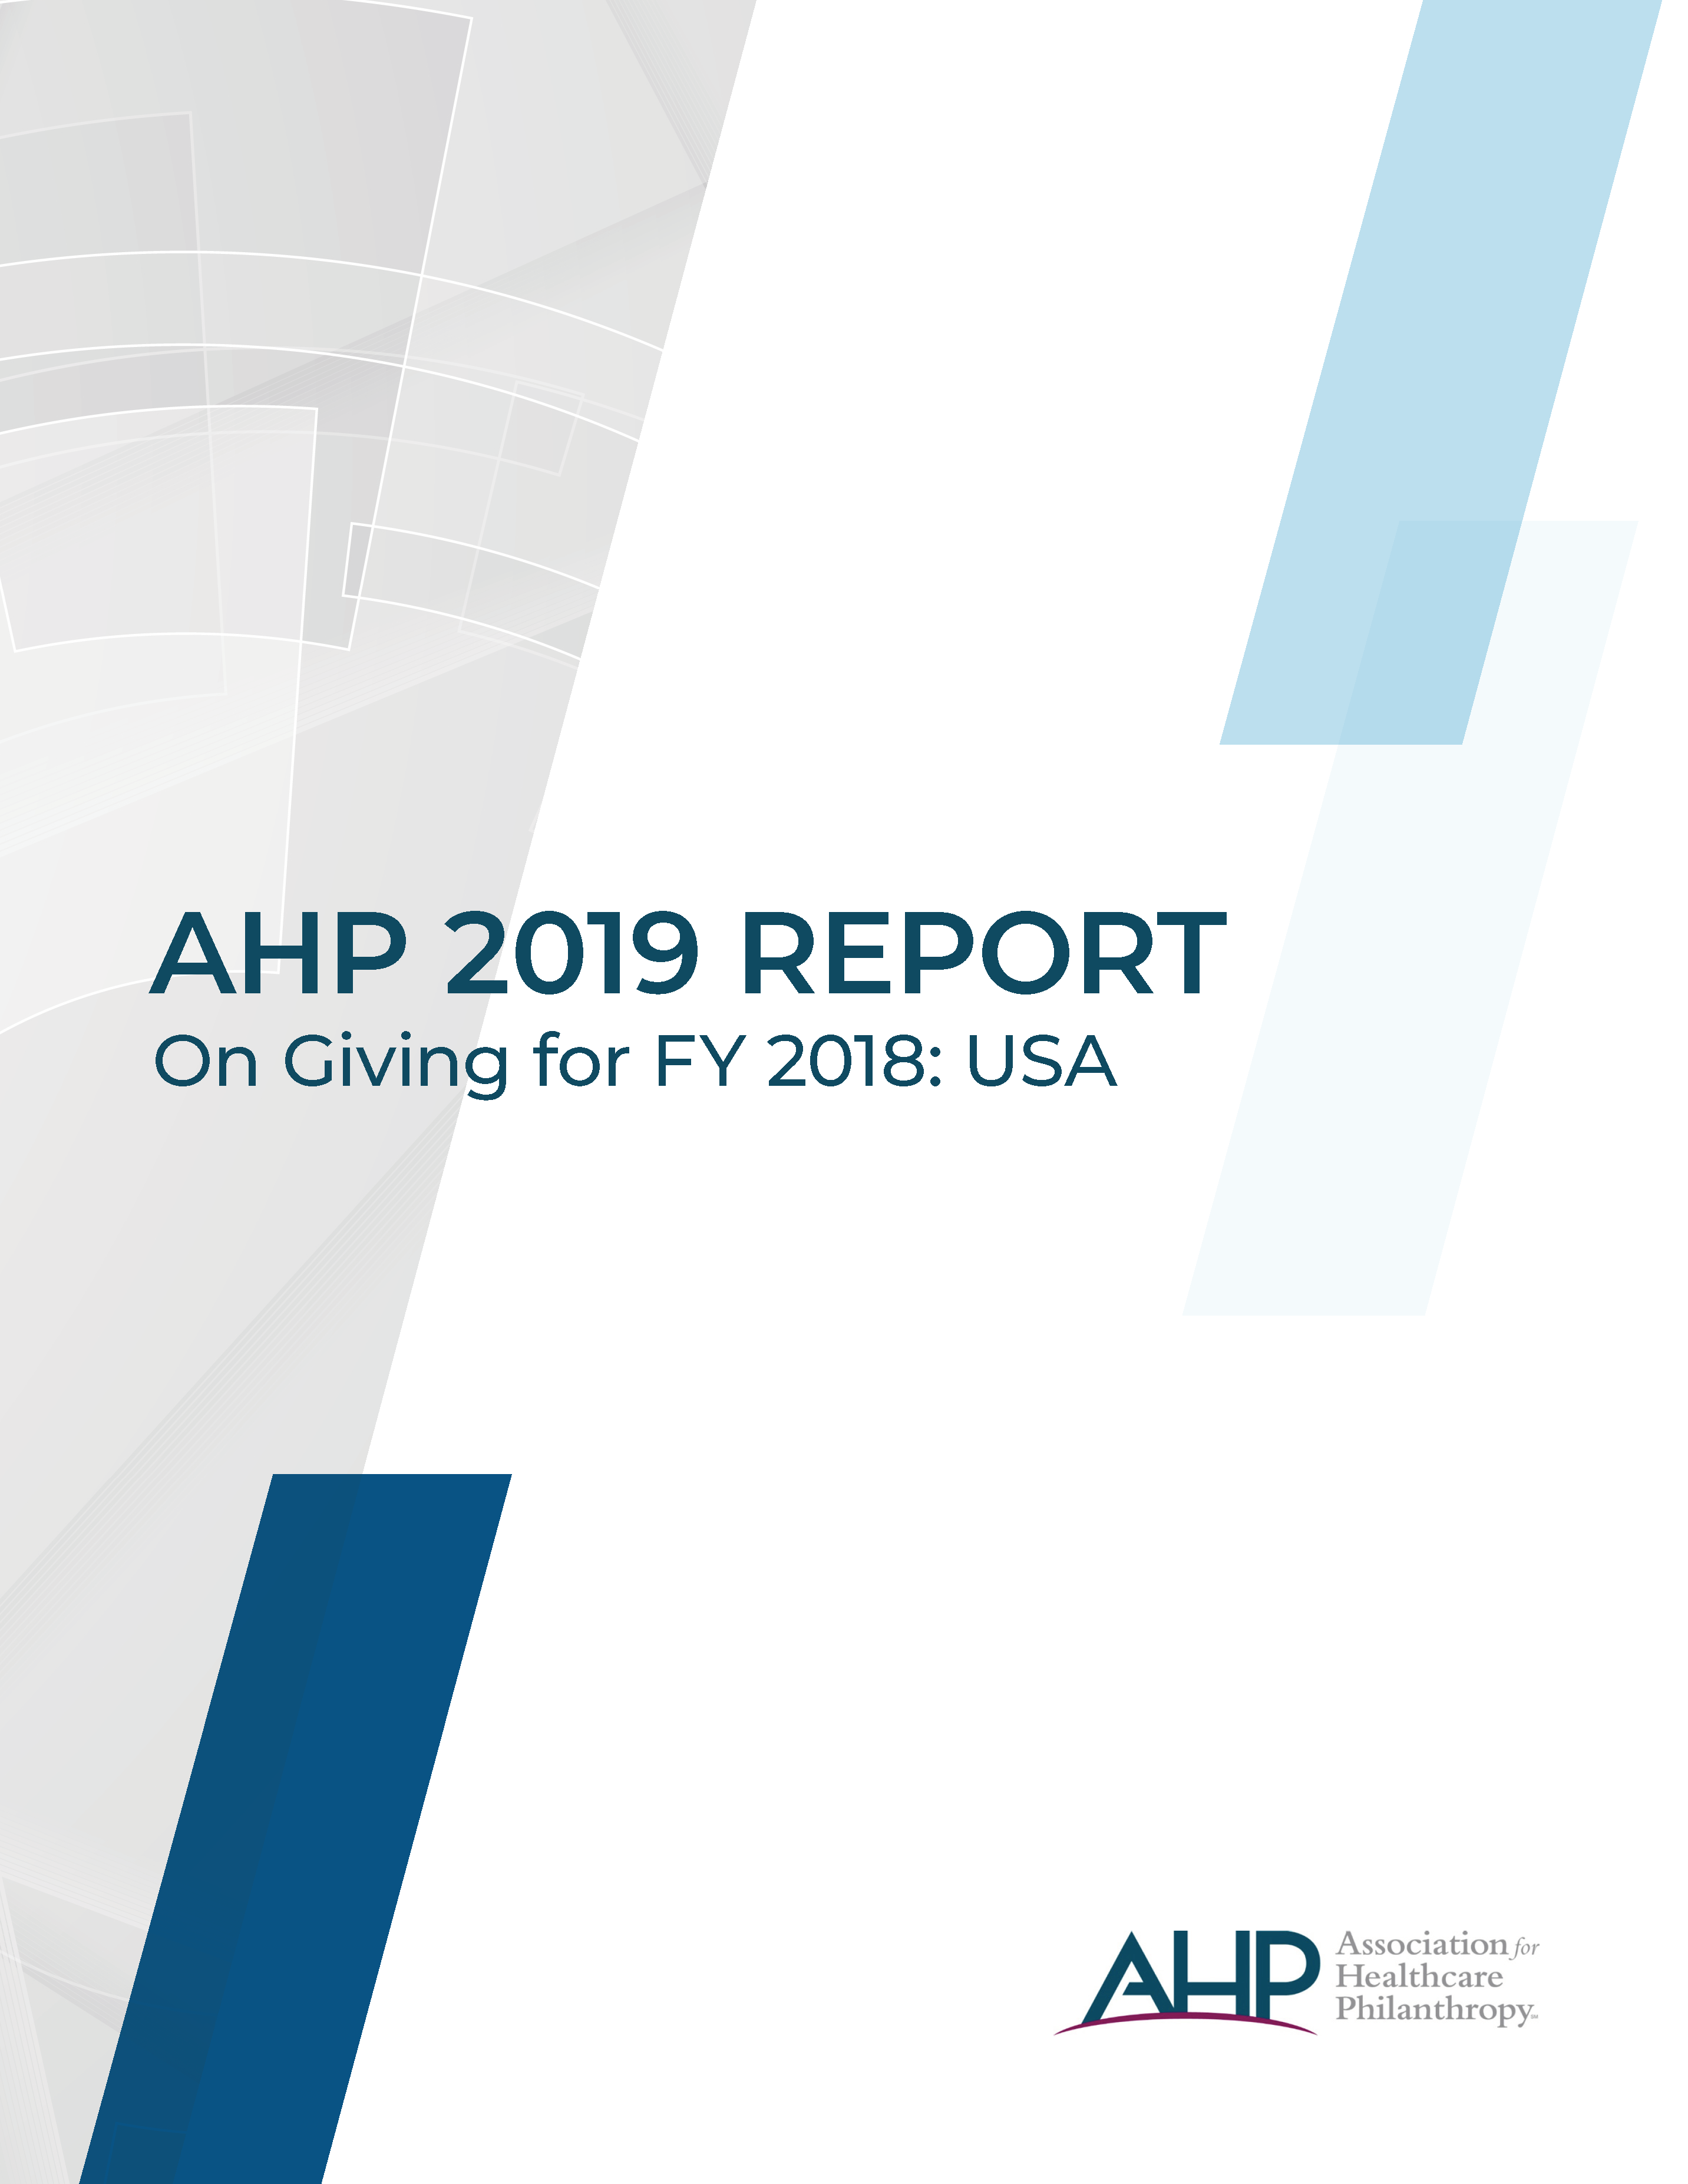 2019 Report on Giving U.S. (Digital Report)